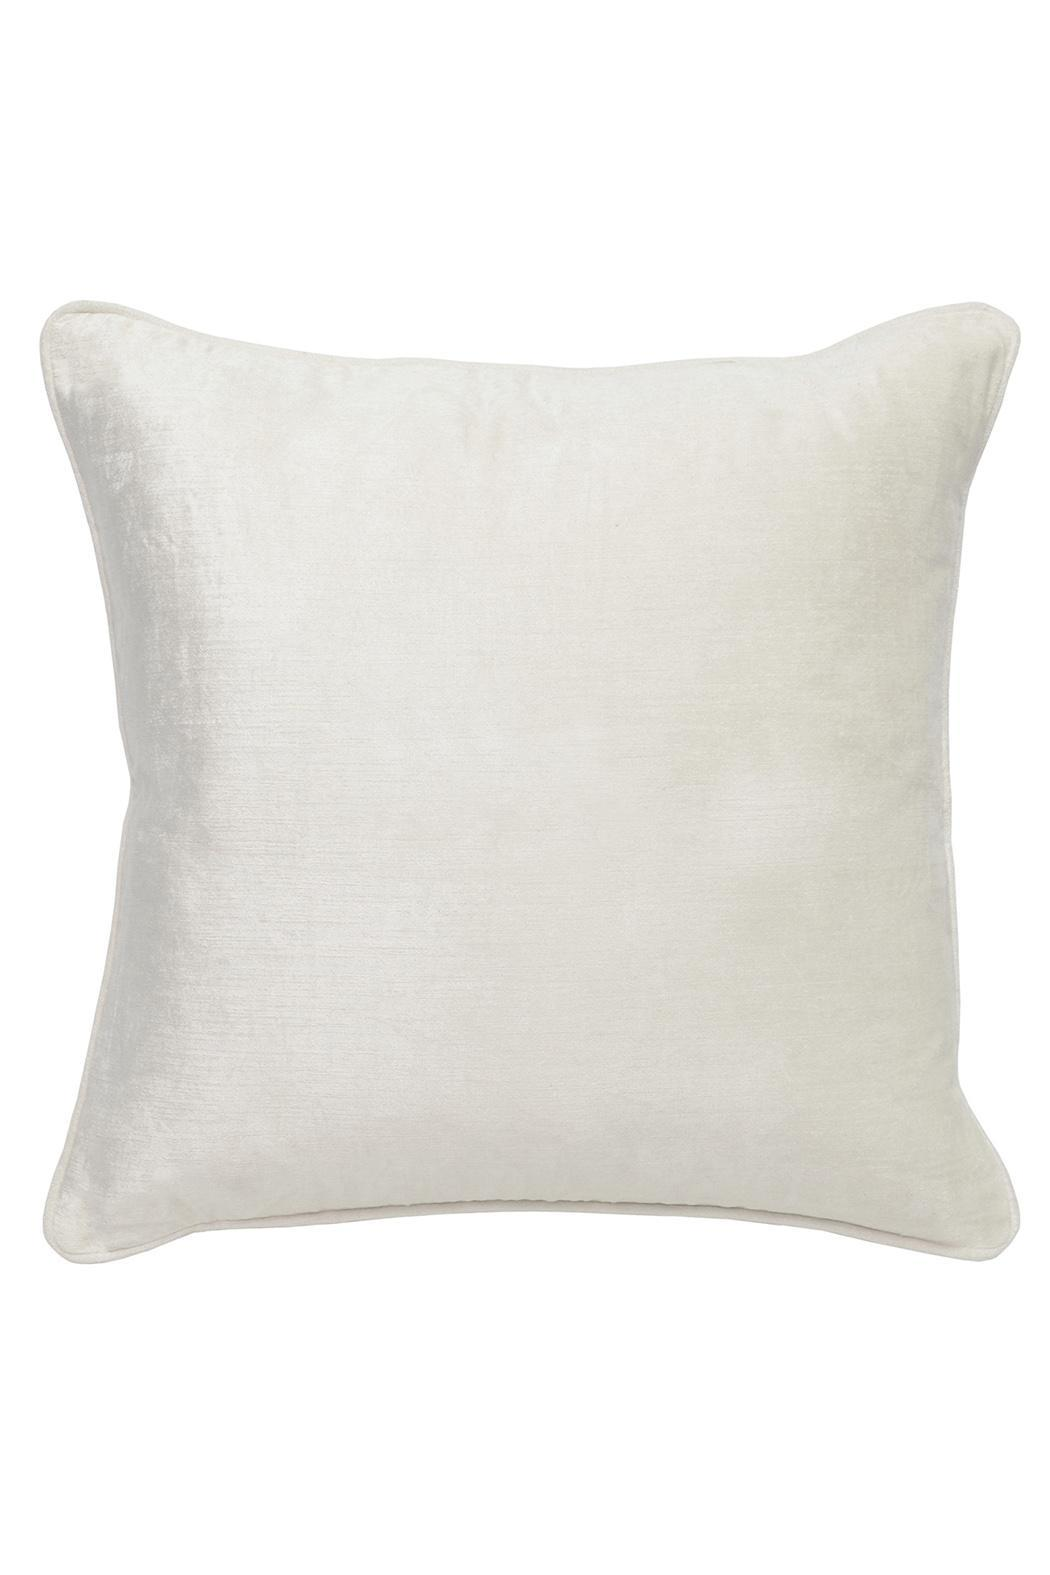 Villa home collection audrey ivory pillow from atlanta by for Villa home collection pillows